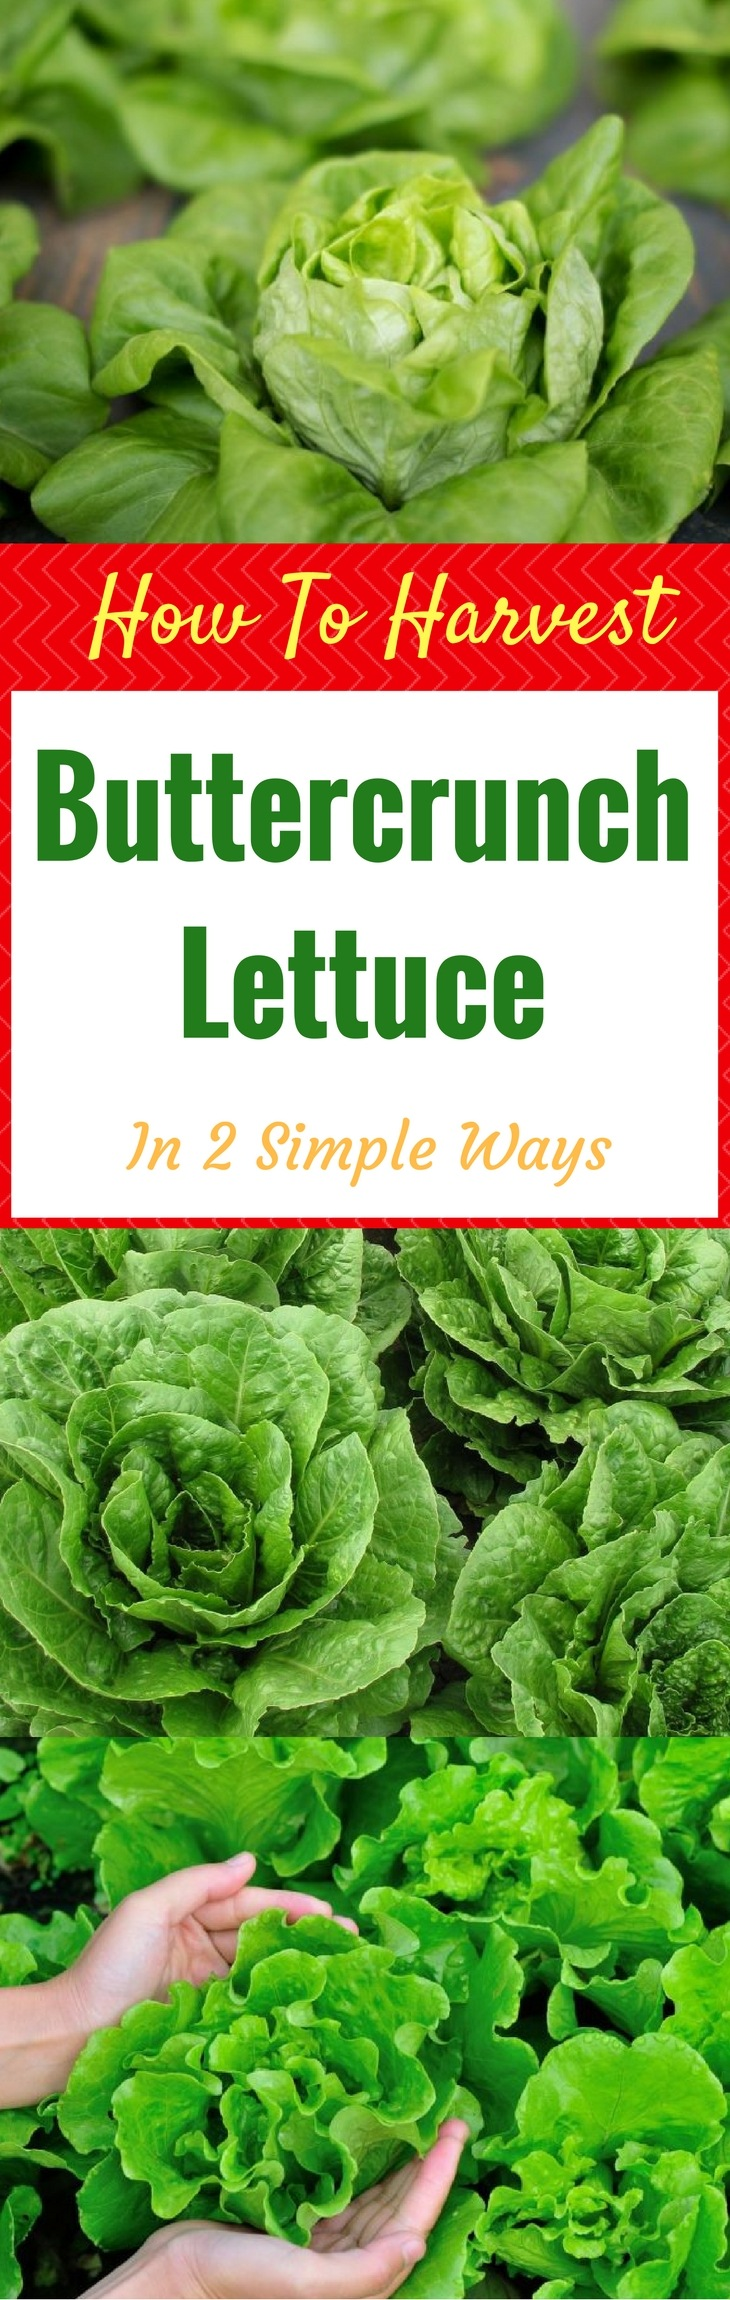 How To Harvest Buttercrunch Lettuce